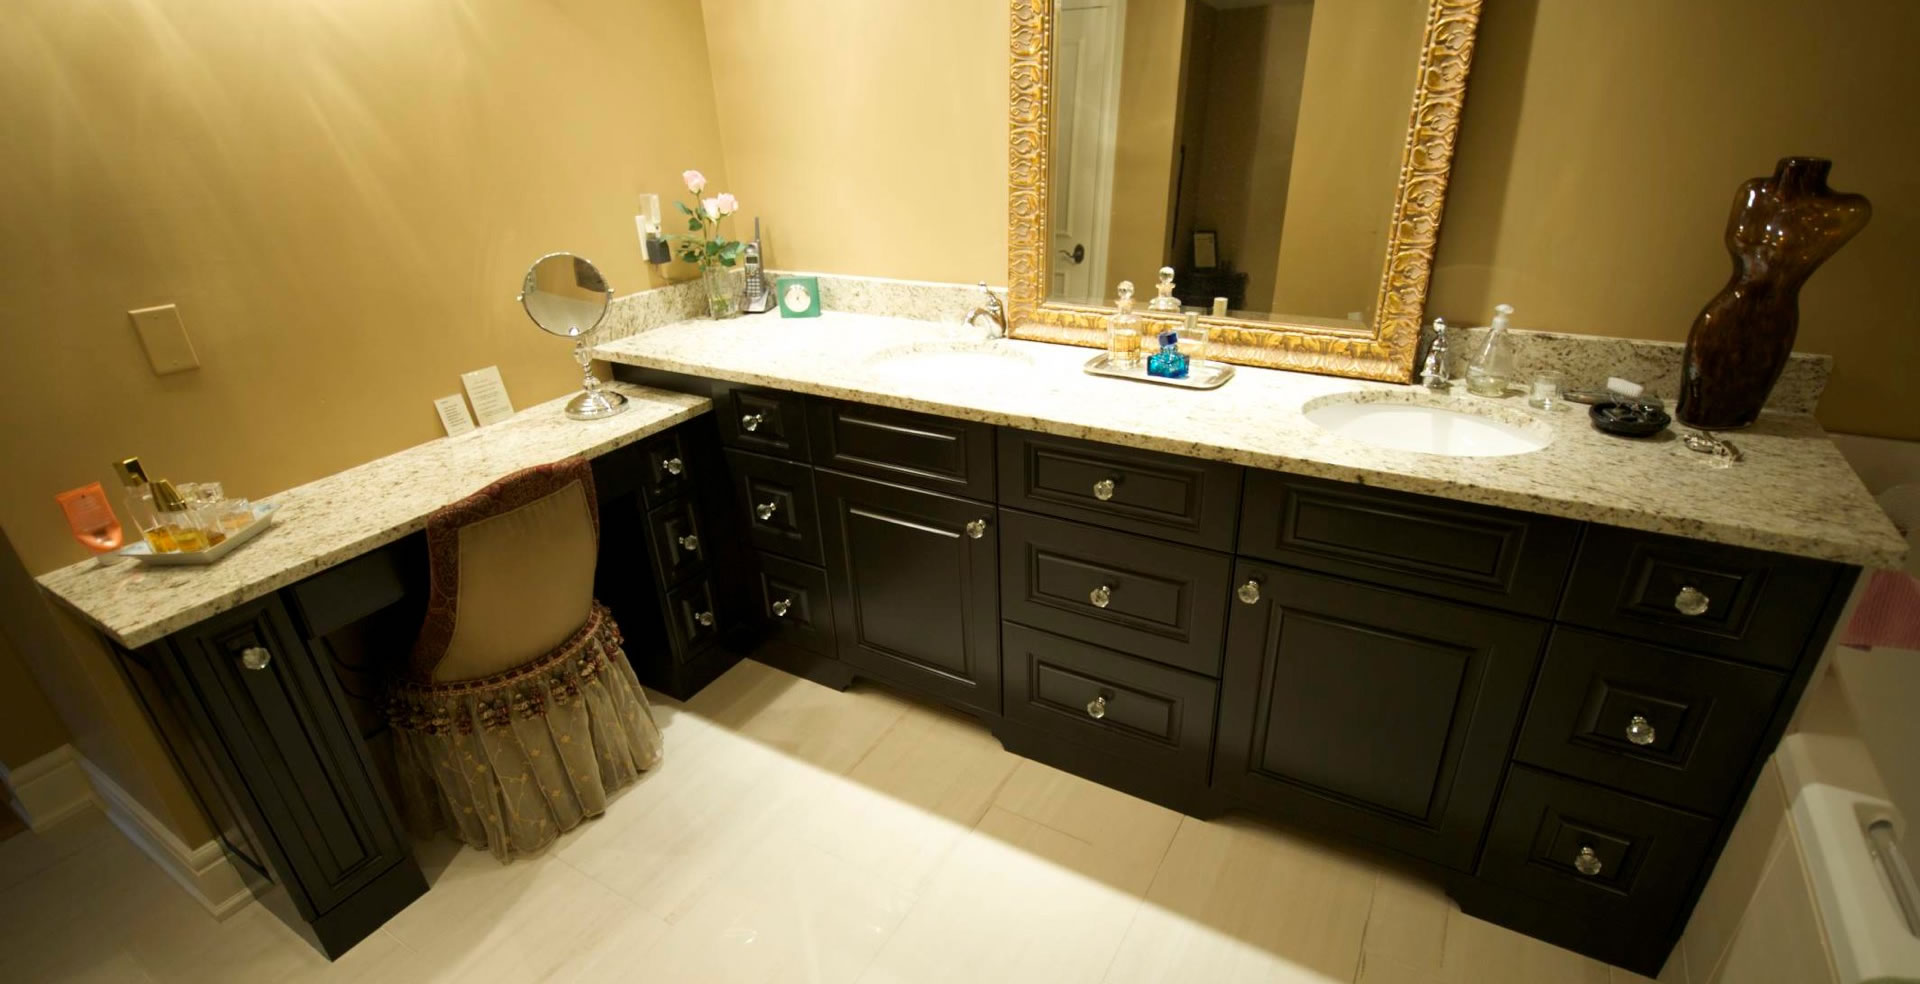 Custom made bathroom cabinets, drawers and vanity space by Evolve Kitchens